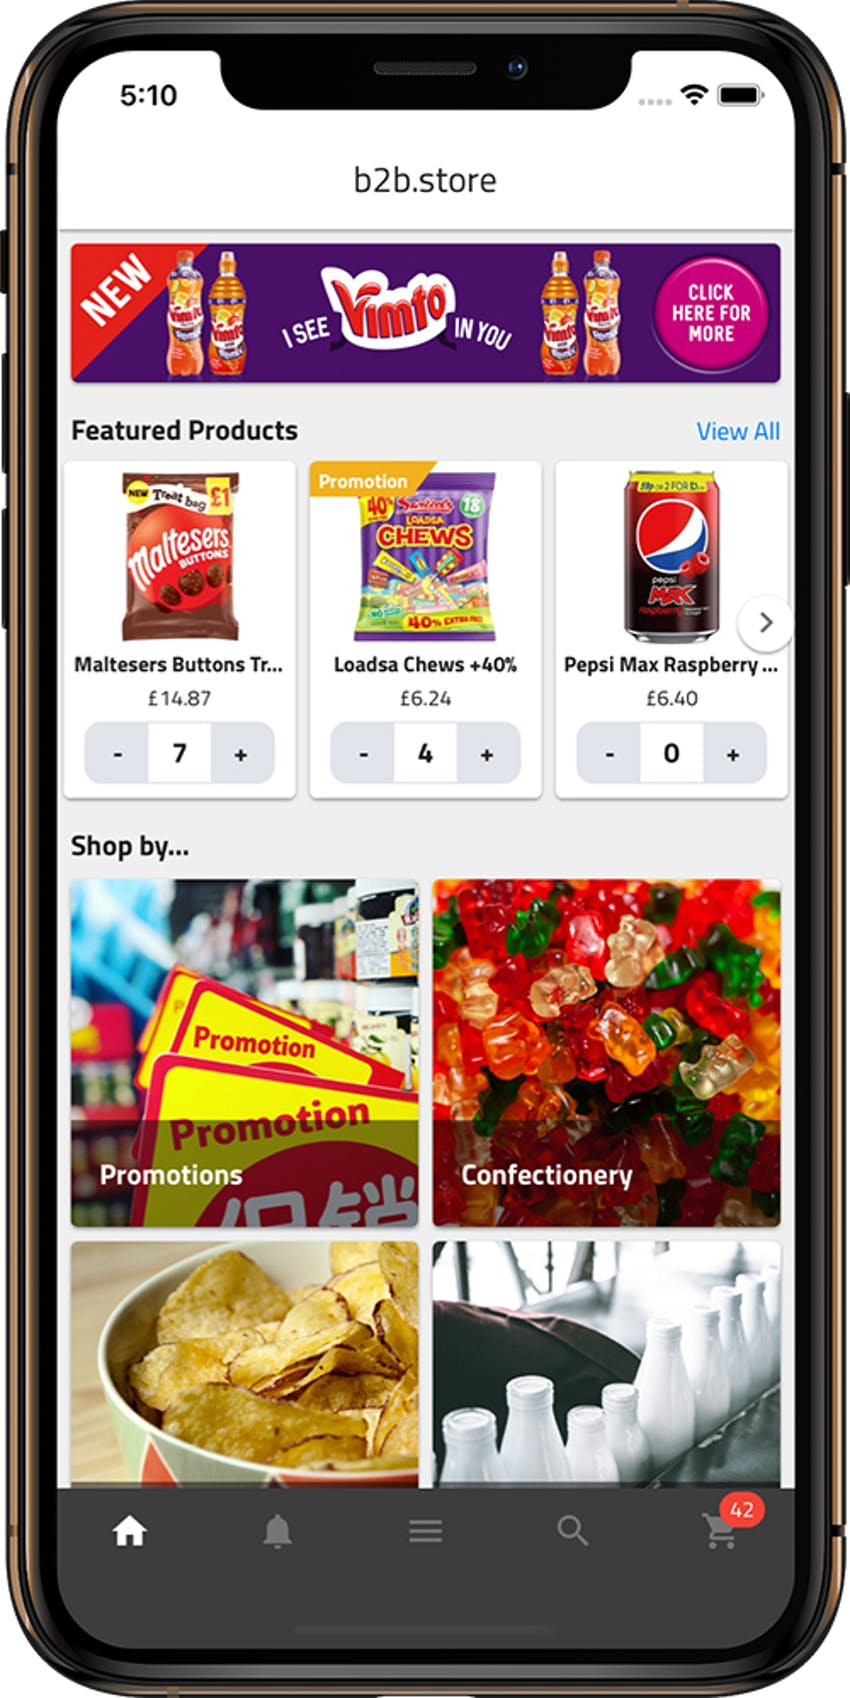 mockup of the b2b.store app with promotions, food categories on an apple iphone